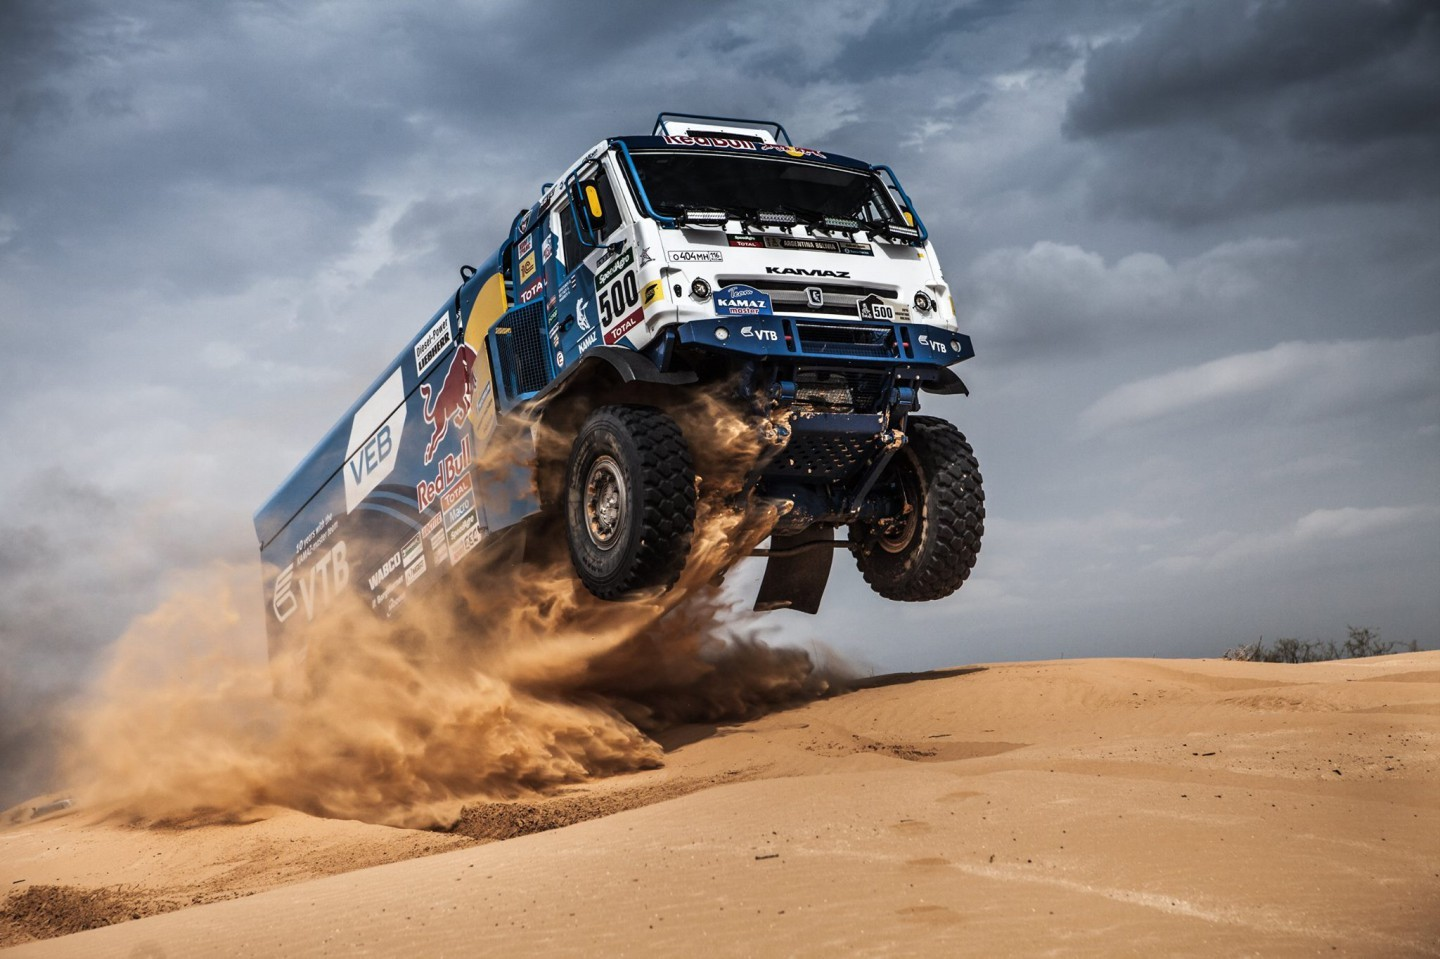 dieciocho ruedas confirmado kamaz gana el dakar 2017 el que podr a ser el ltimo triunfo del. Black Bedroom Furniture Sets. Home Design Ideas